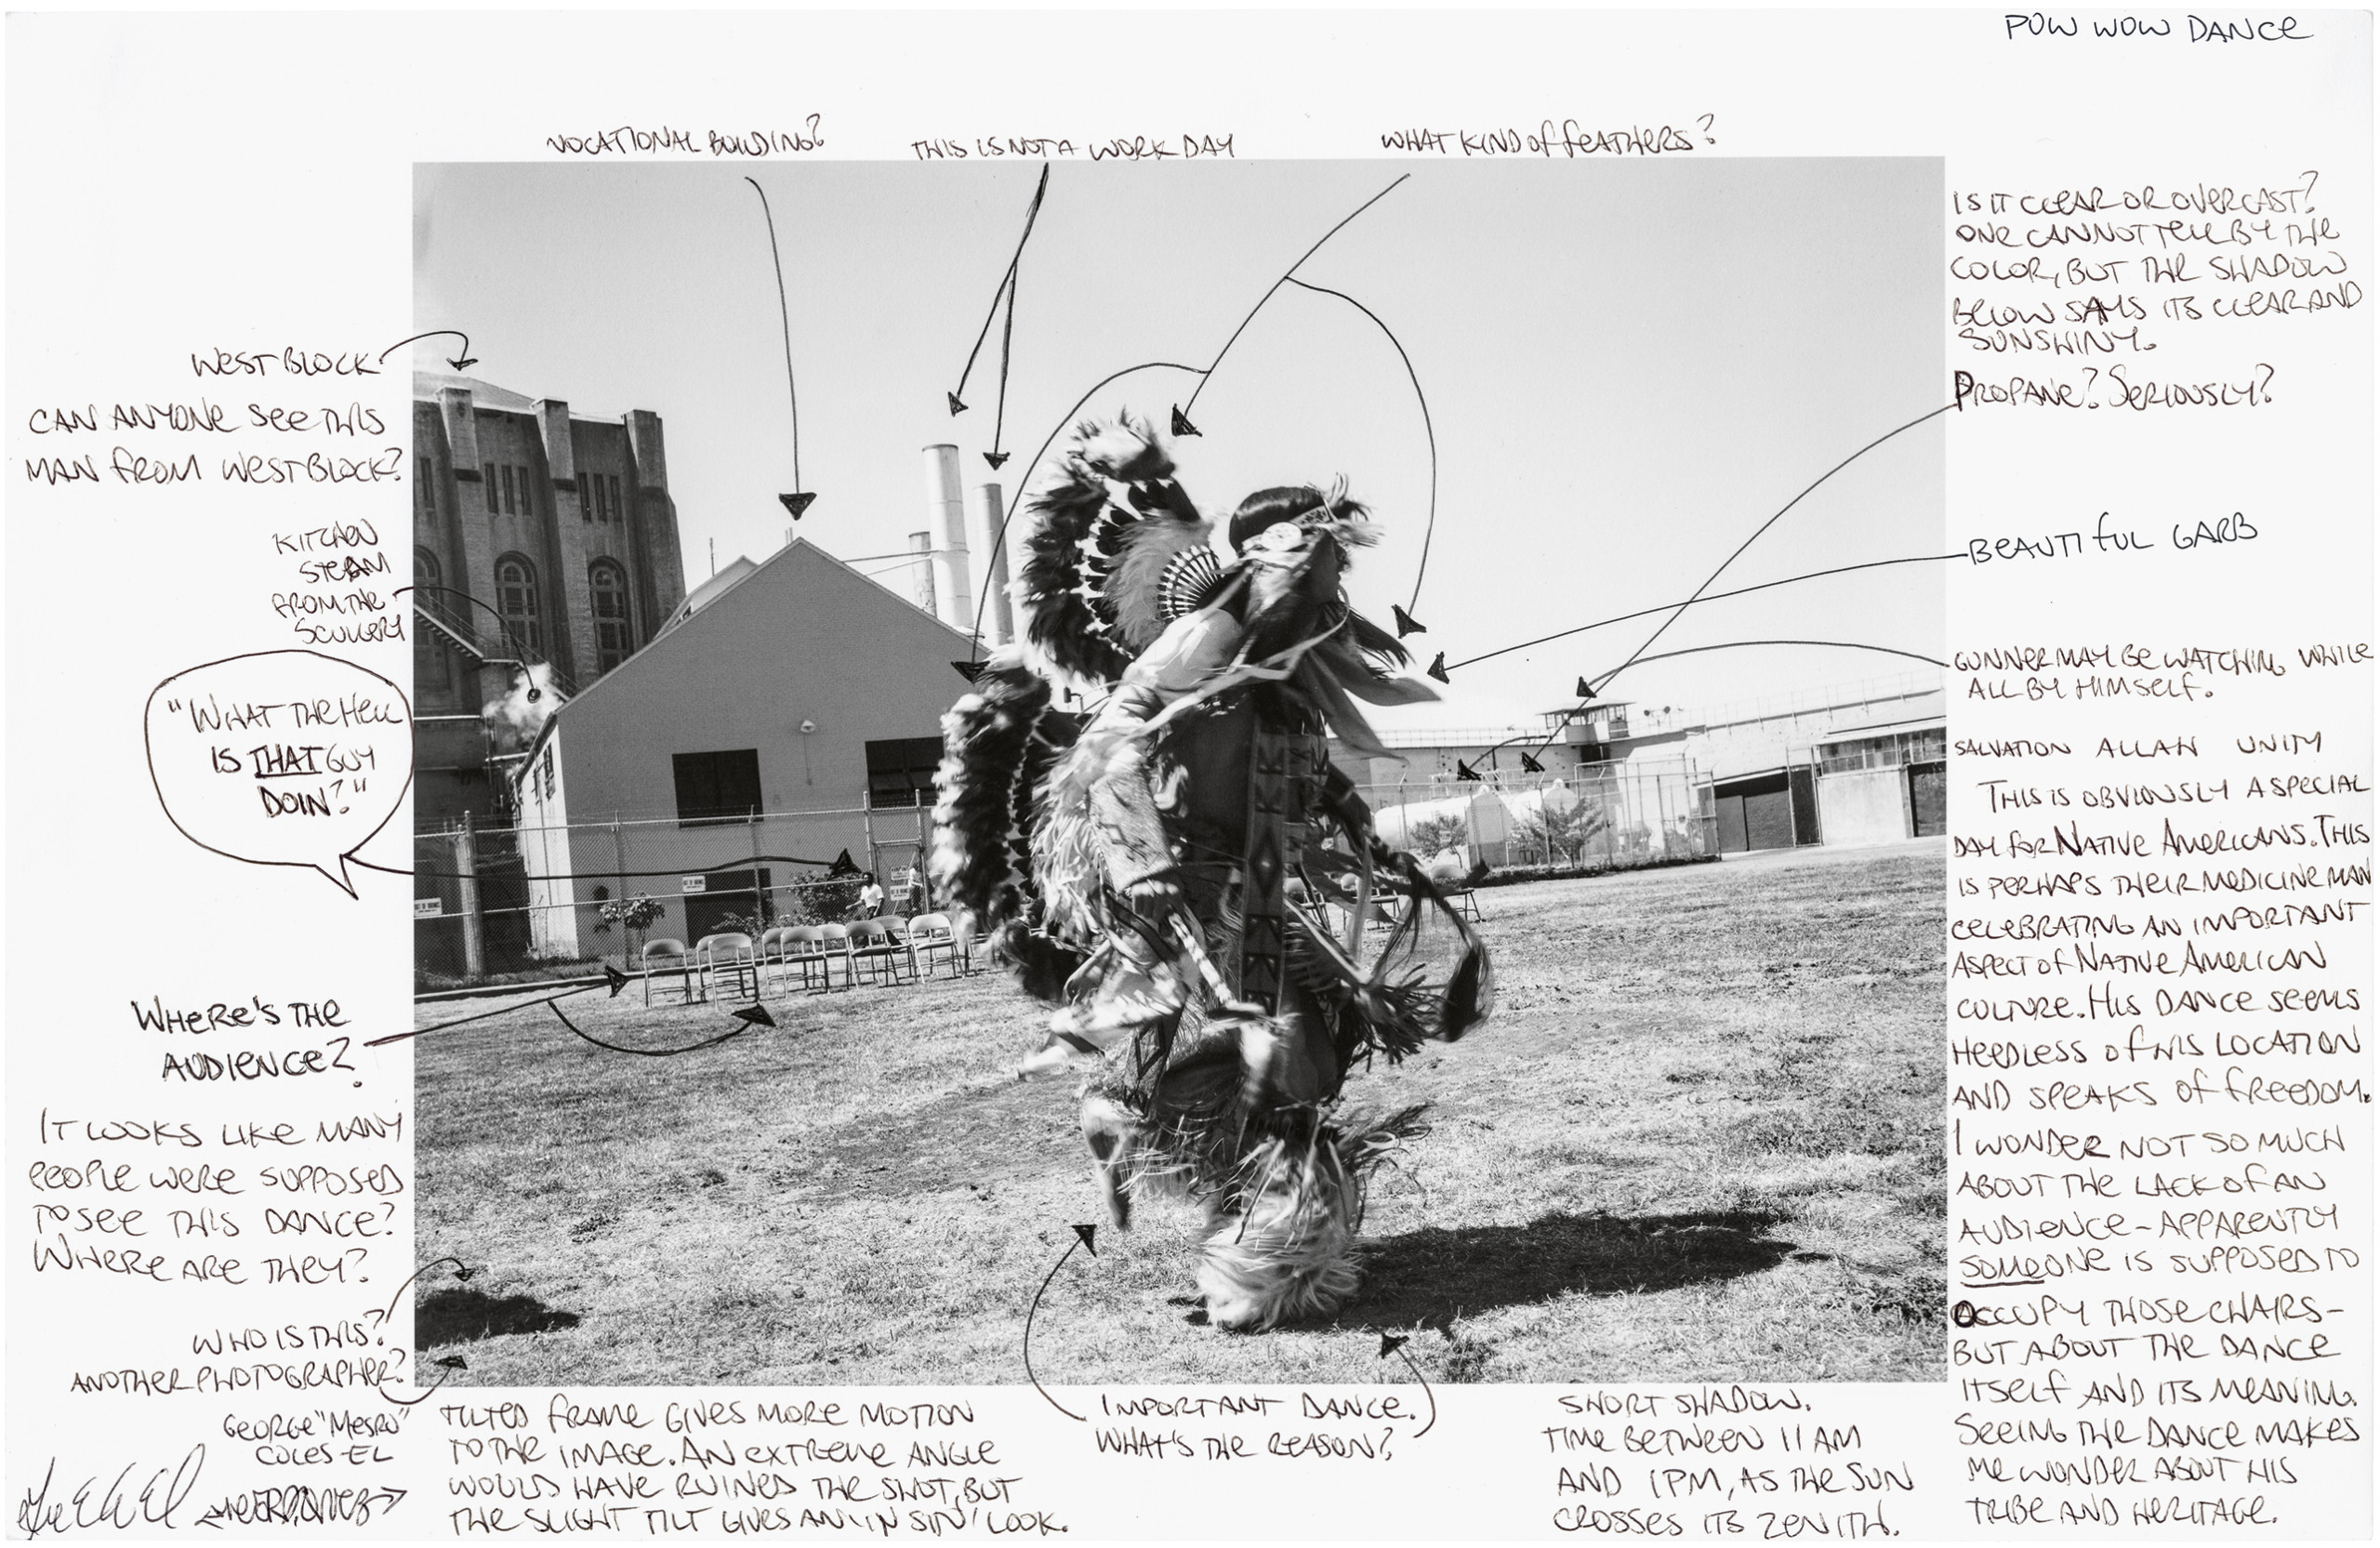 photograph of man dressed in traditional Native American wears in prison yard; scan of the image surrounded by handwritten notes